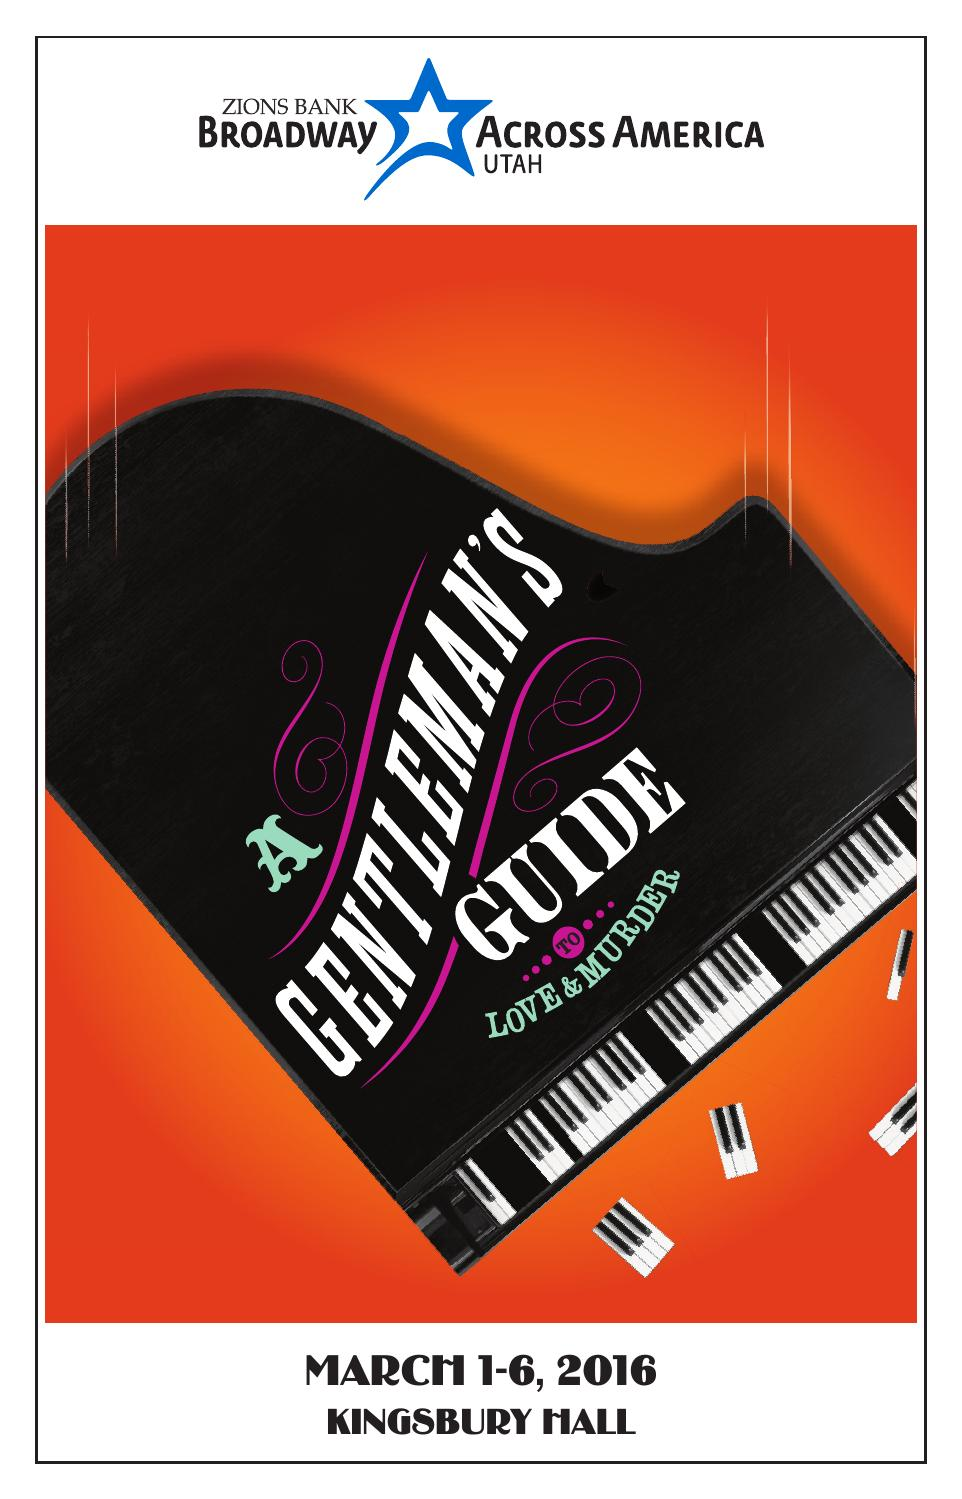 A Gentleman's Guide to Love & Murder by Mills Publishing Inc